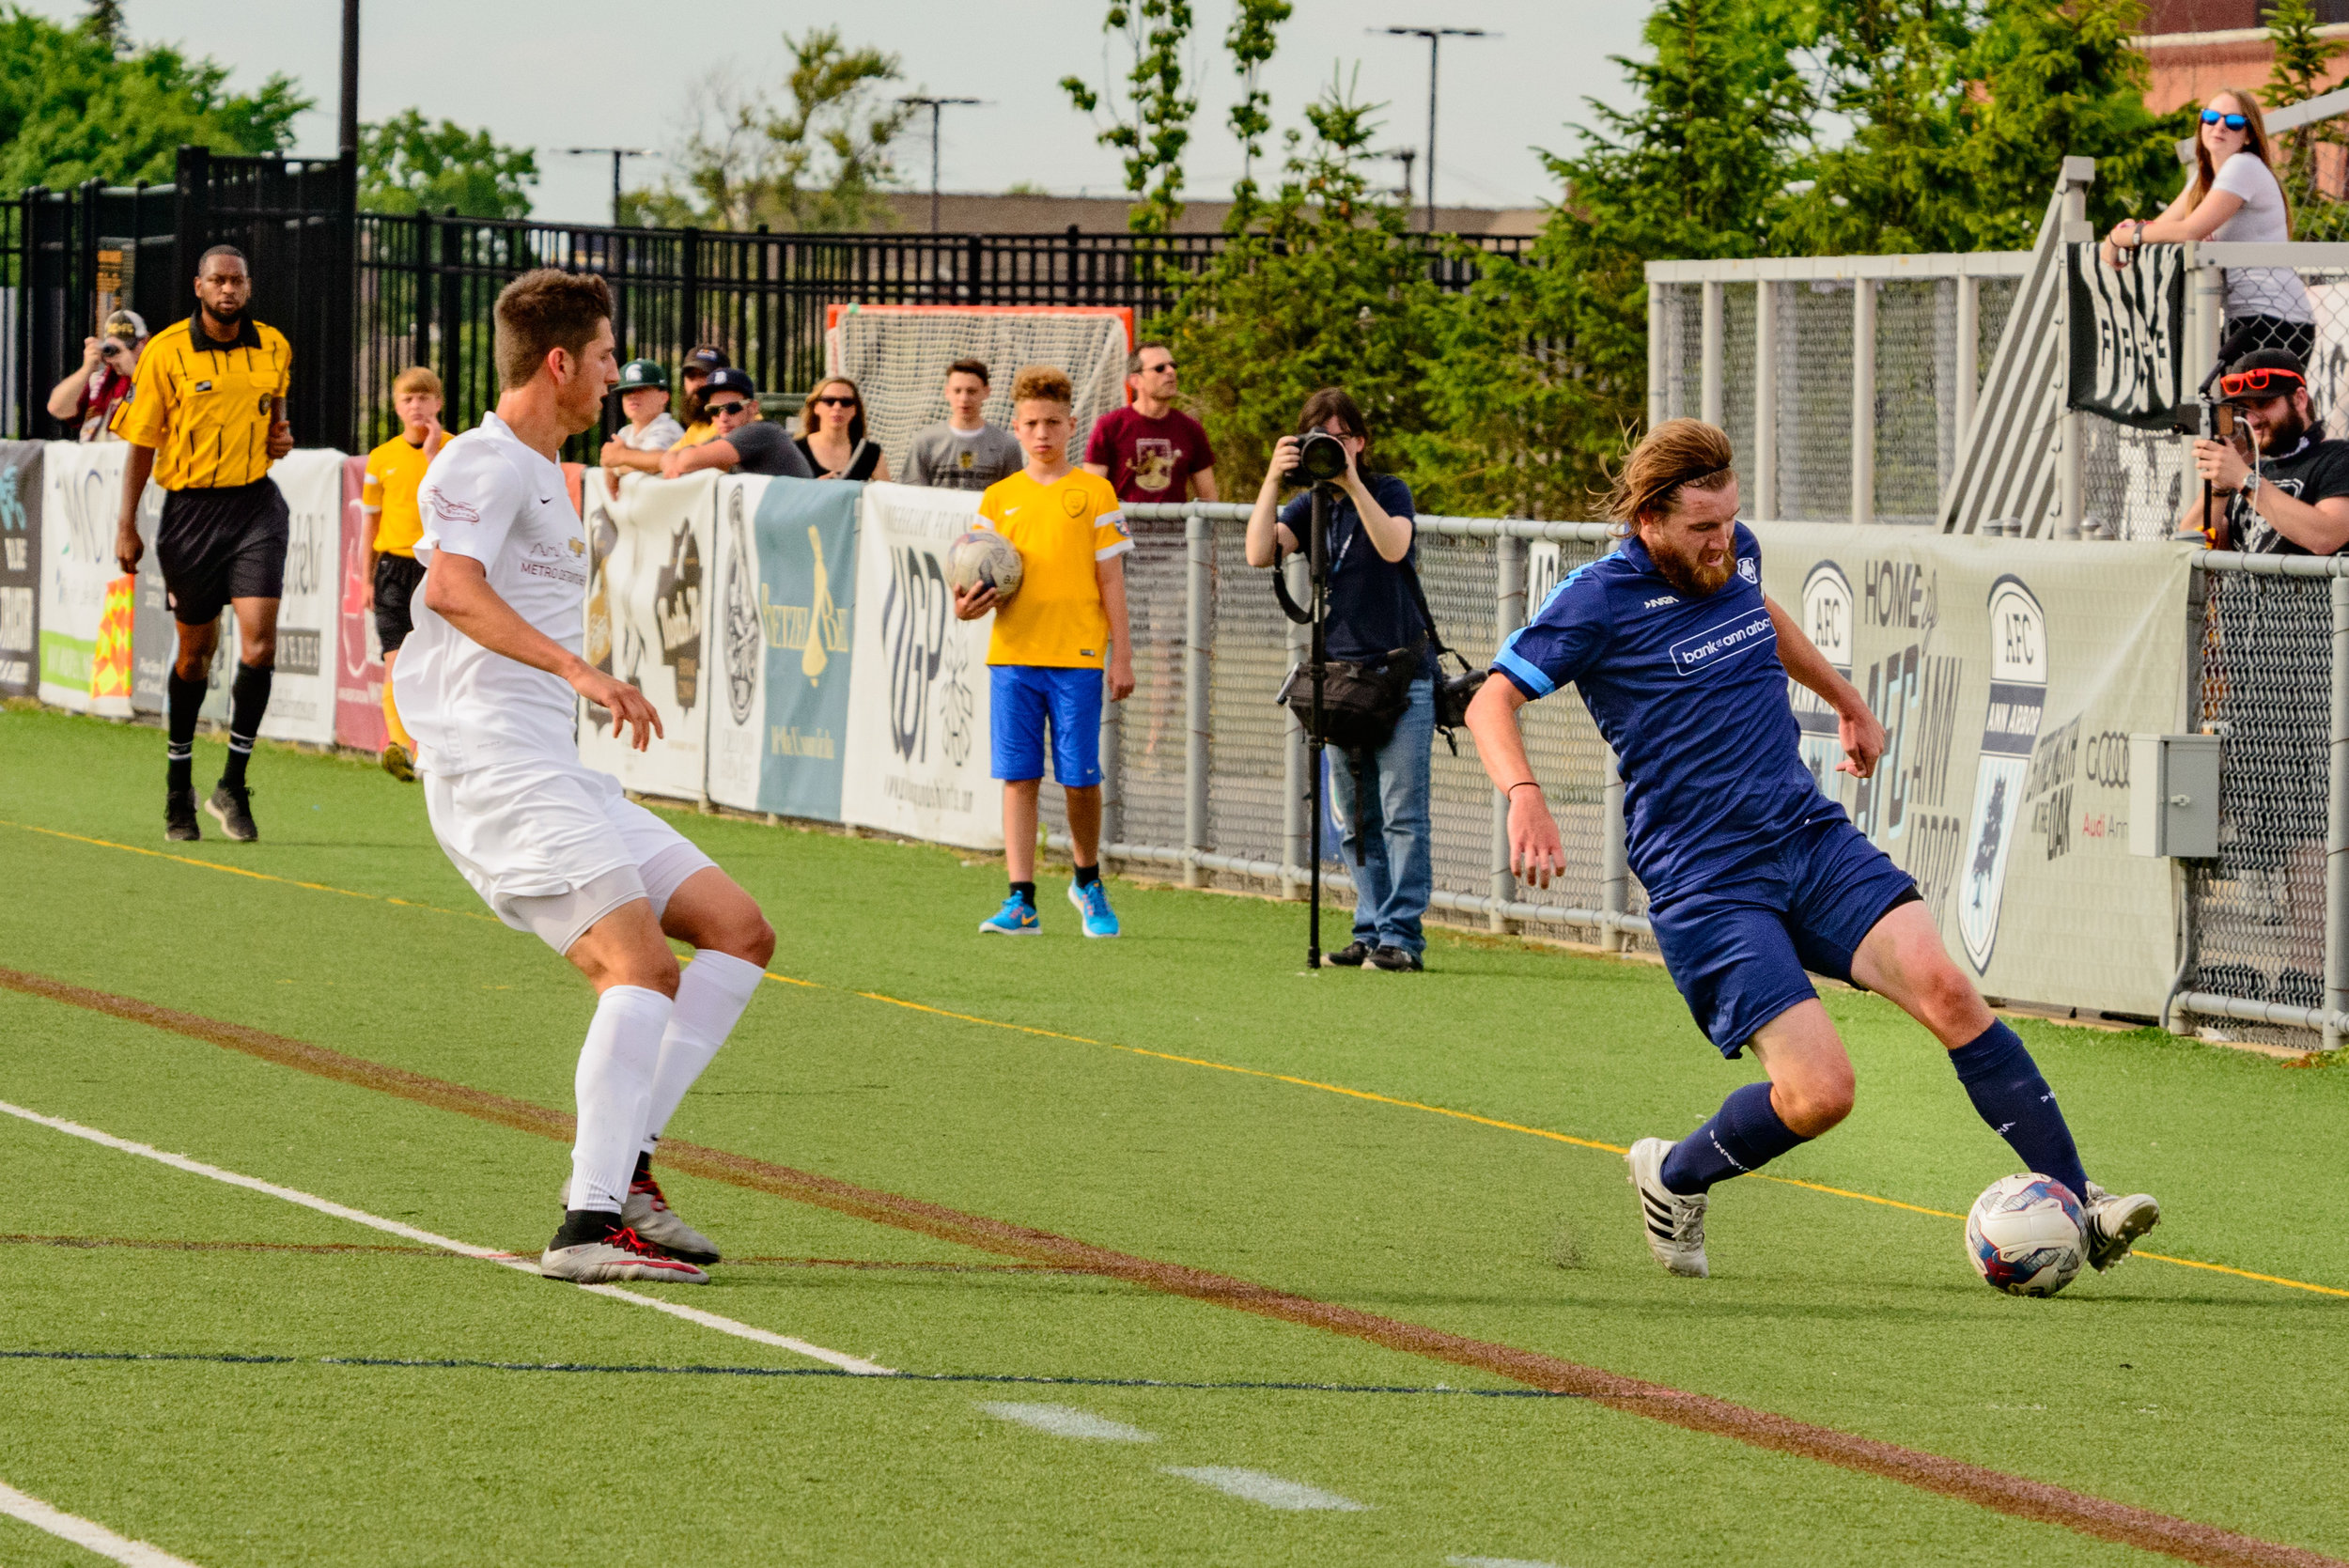 Leigh Rumbold controls the ball at Hollway Field on July 3rd vs. Detroit City FC